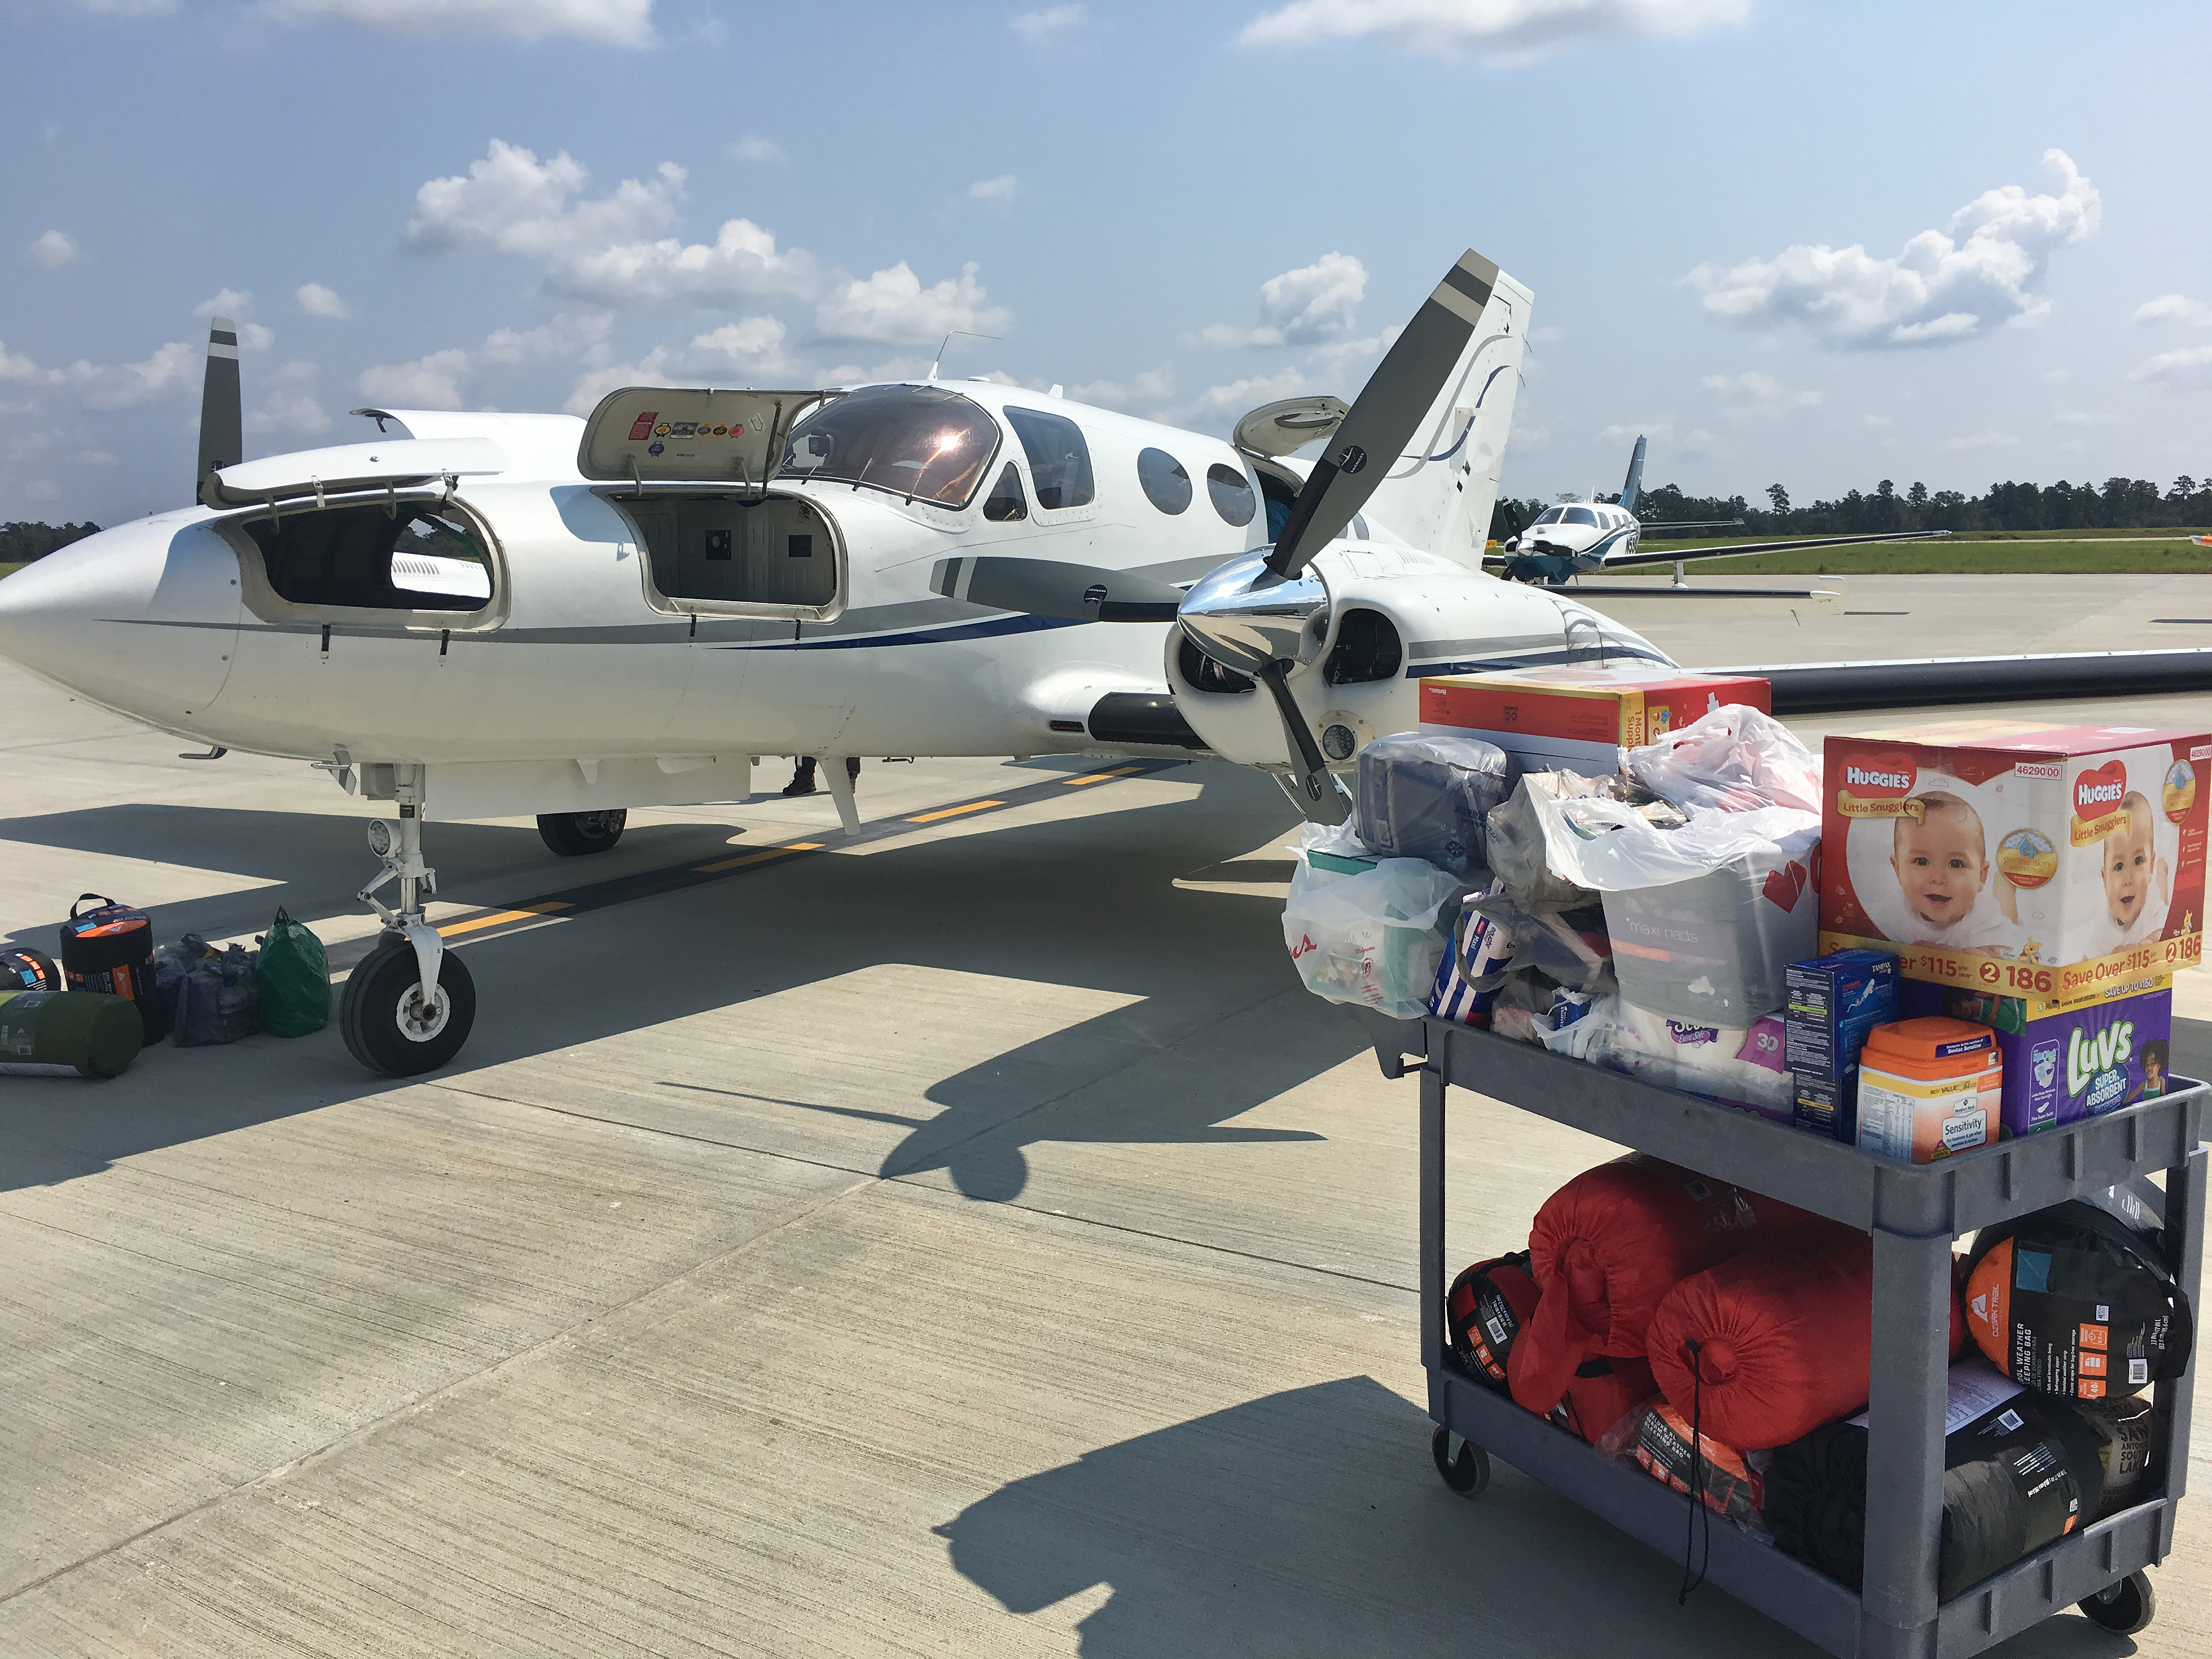 General aviation volunteers including Cessna pilot Robert Johnson contributed to Operation Airdrop, a grassroots and crowd-funded rescue organization that sprung up in Hurricane Harvey's aftermath. Photo courtesy of Robert Johnson.